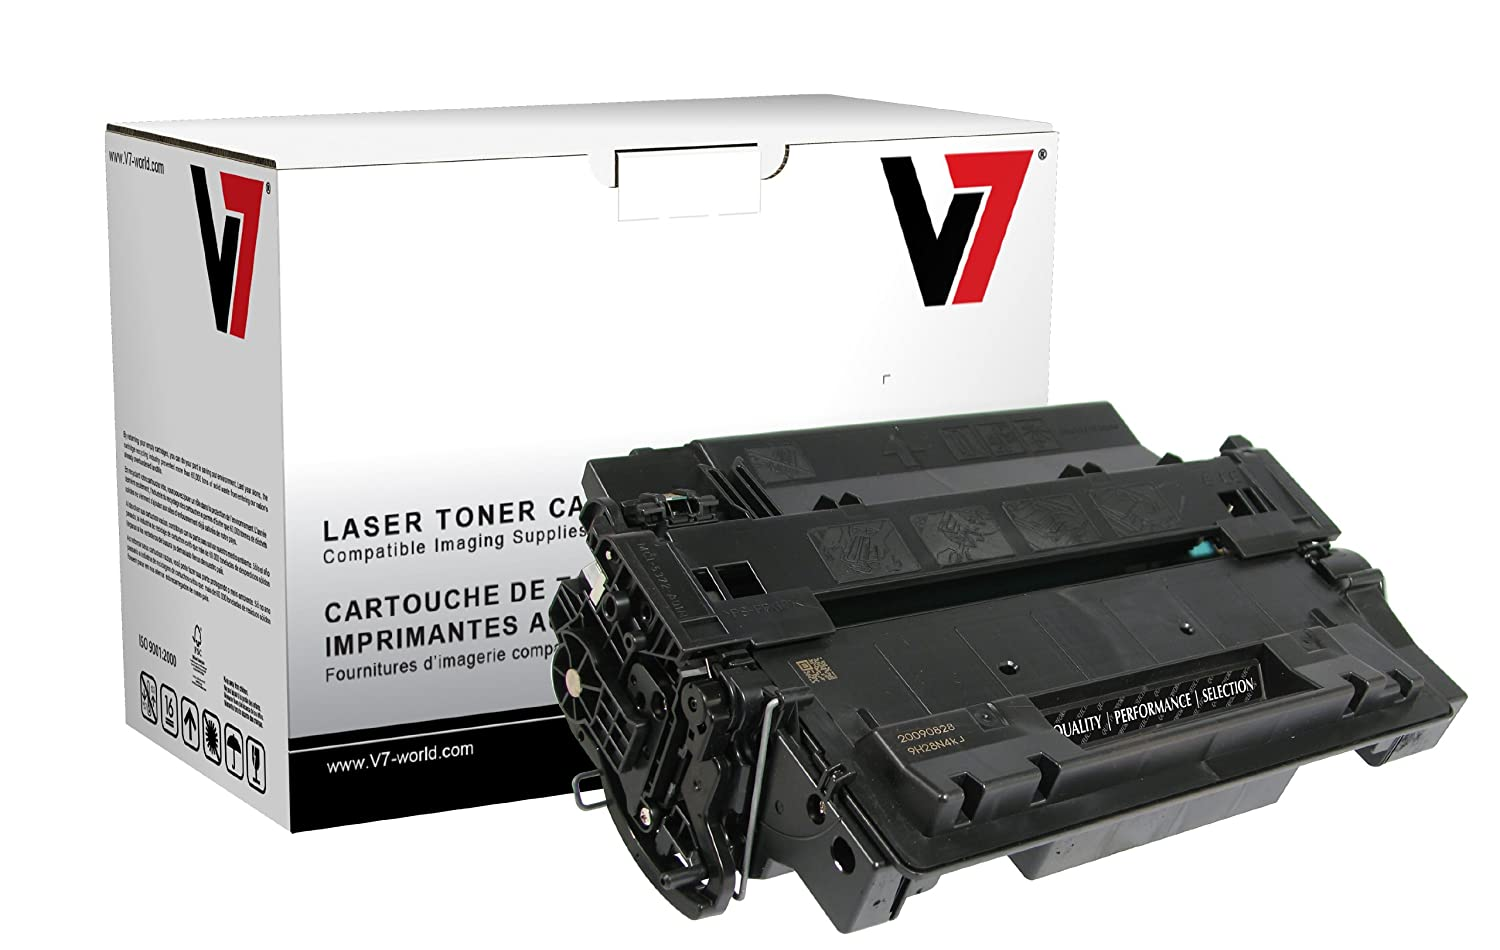 V7 THK26015 Laser Toner for HP Printers (Replaces CB380A (HP